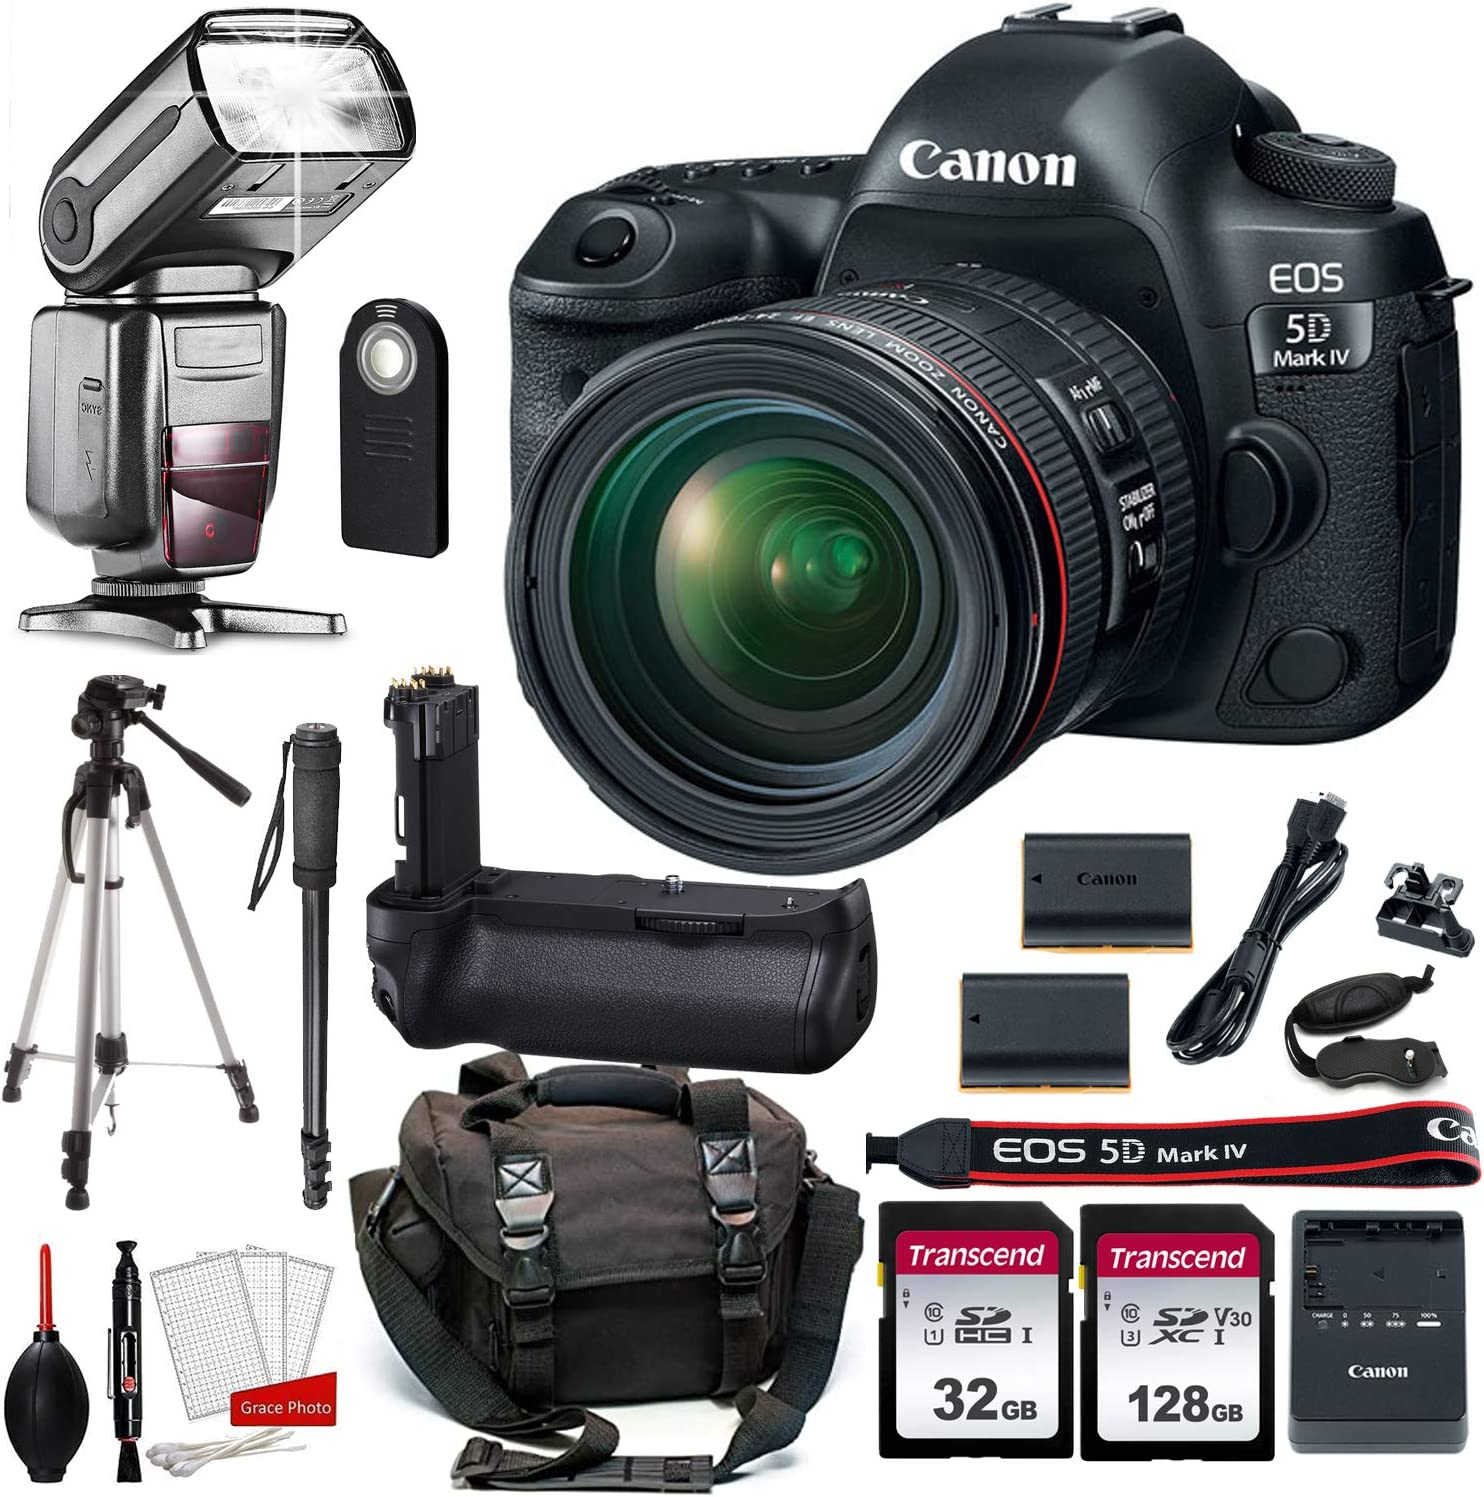 Canon EOS 5D Mark IV DSLR Camera with 24-70mm f/4L Lens + Prime Accessory Bundle (20 Items)